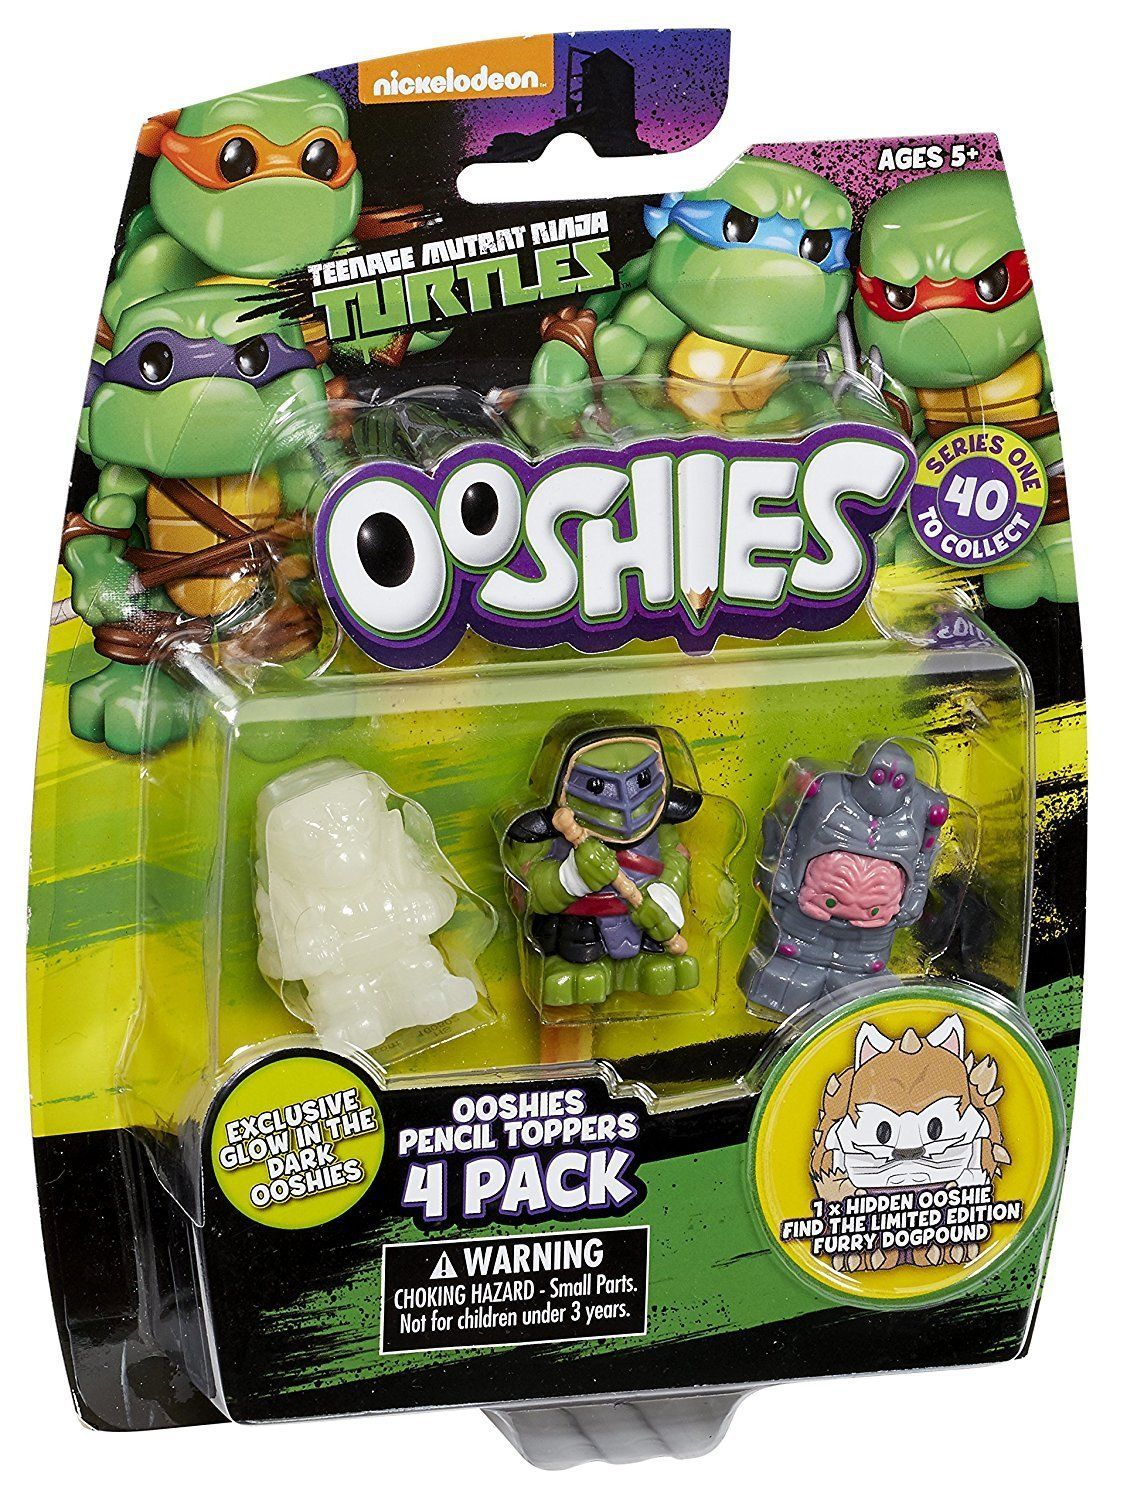 Ooshies 4 Pack Teenage Mutant Ninja Turtles